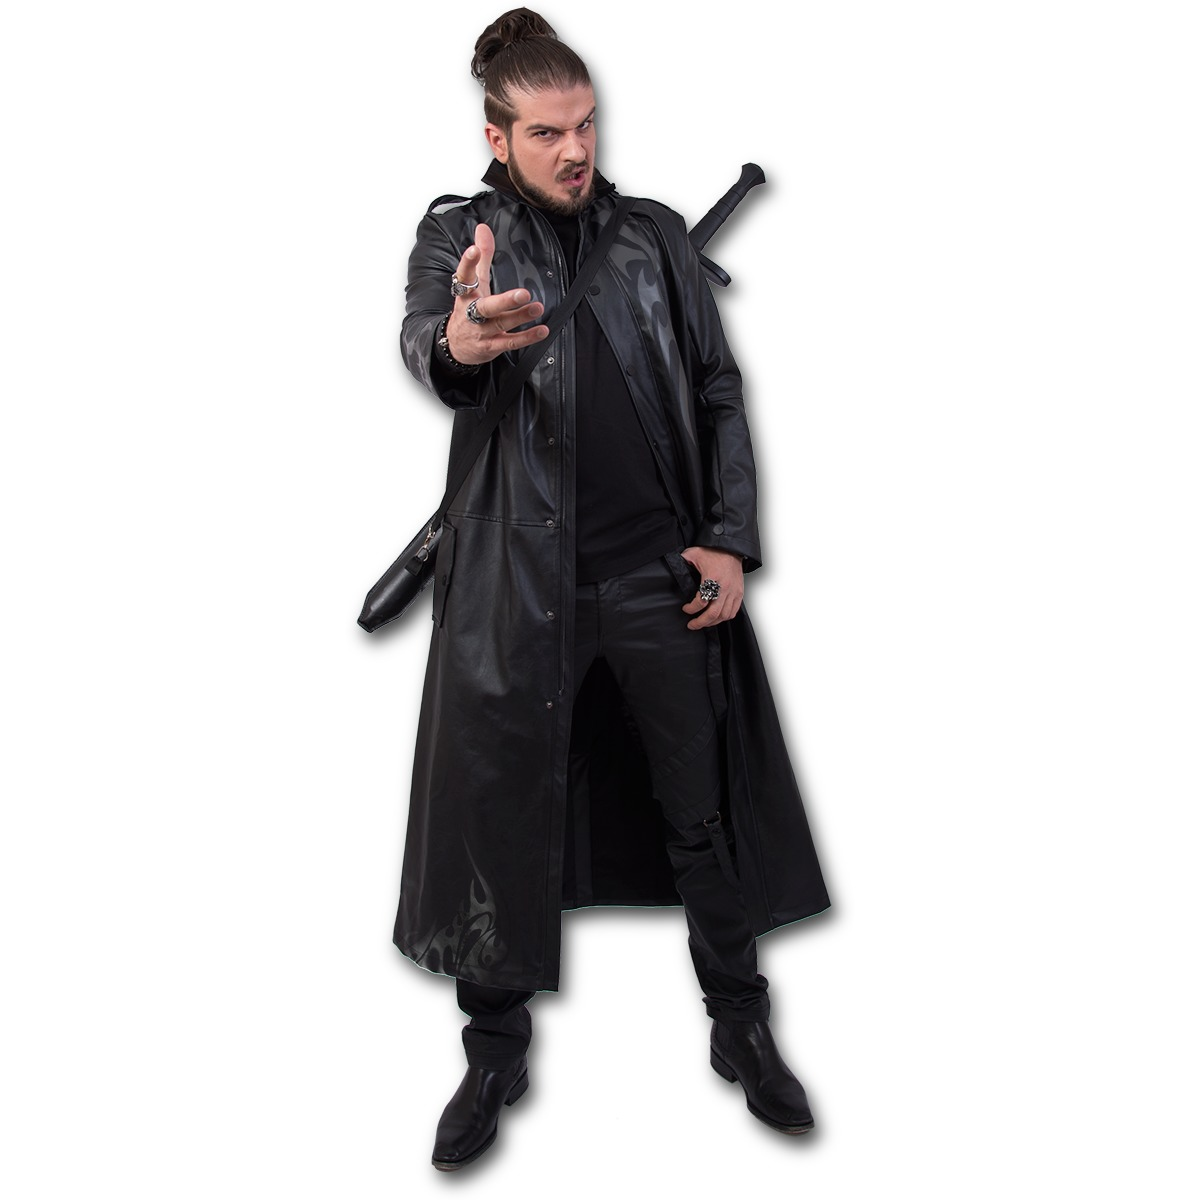 rebelsmarket_gothic_trench_coat_pu_leather_with_full_zip_jackets_2.jpg